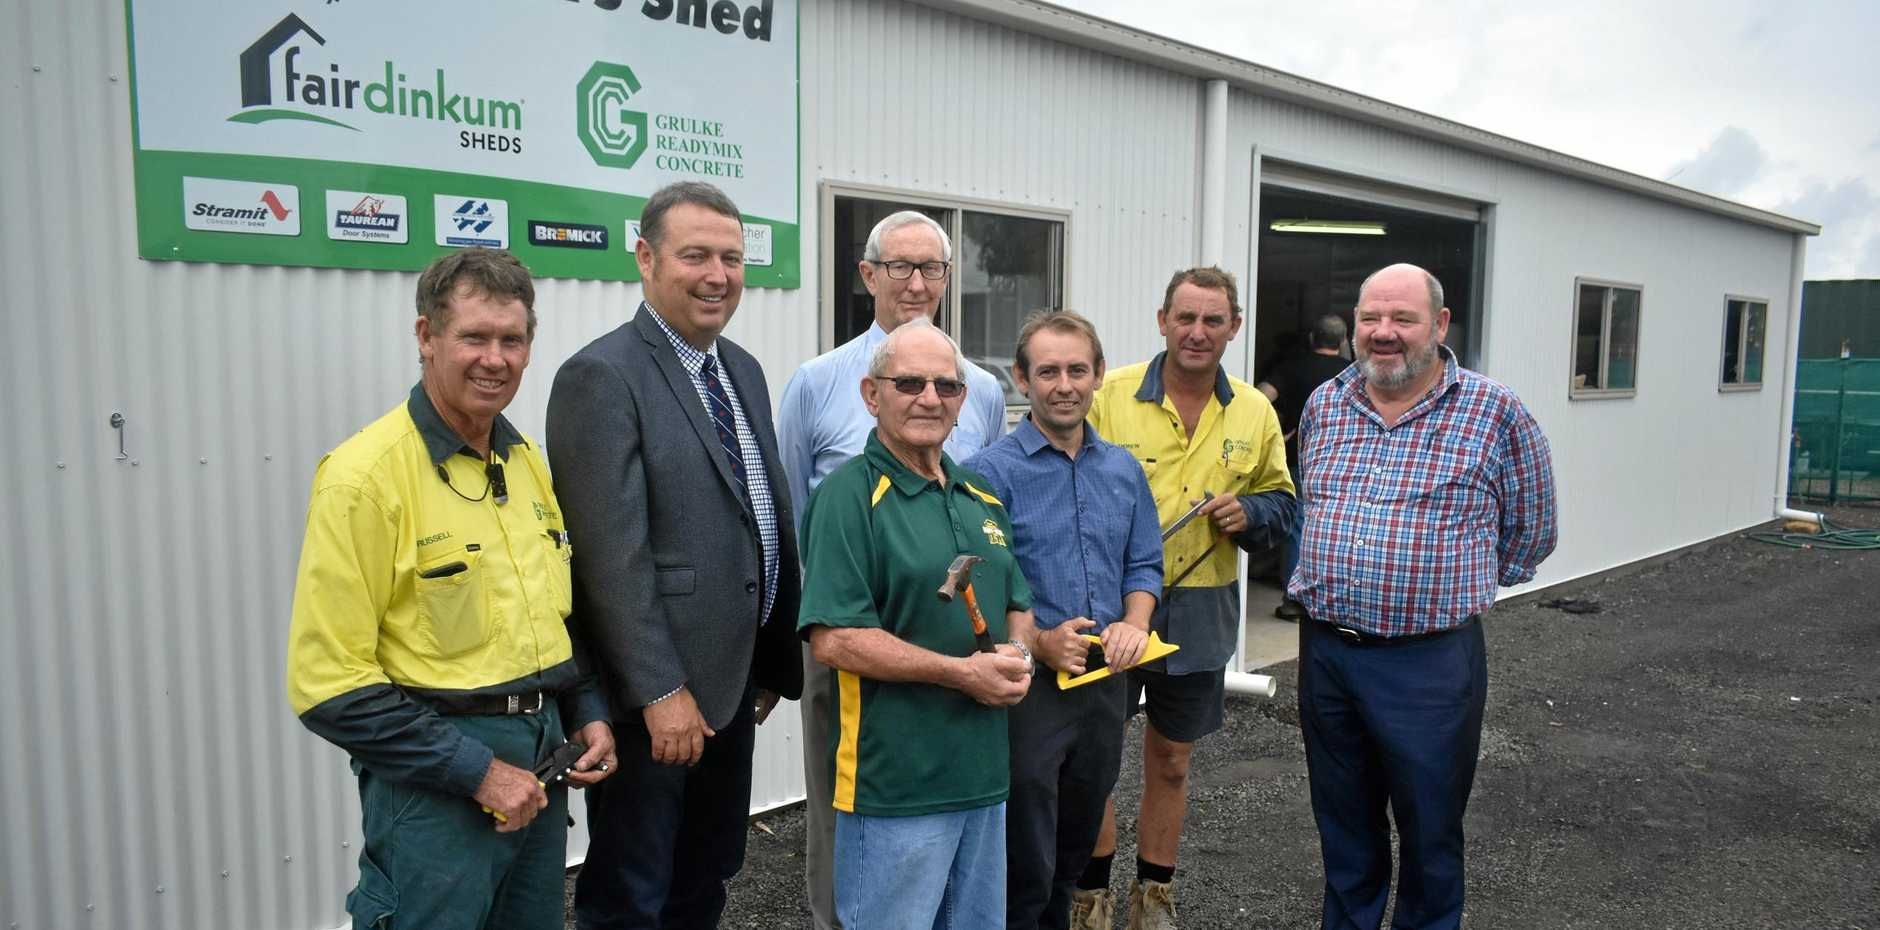 HAPPY MEN: Russell Grulke, Tyson Golder, Mick Stuhmcke, Bruce Scott, Kevin Chambers, Andrew Harvey and Michael Reddan at the opening of the Roma Men's Shed building.